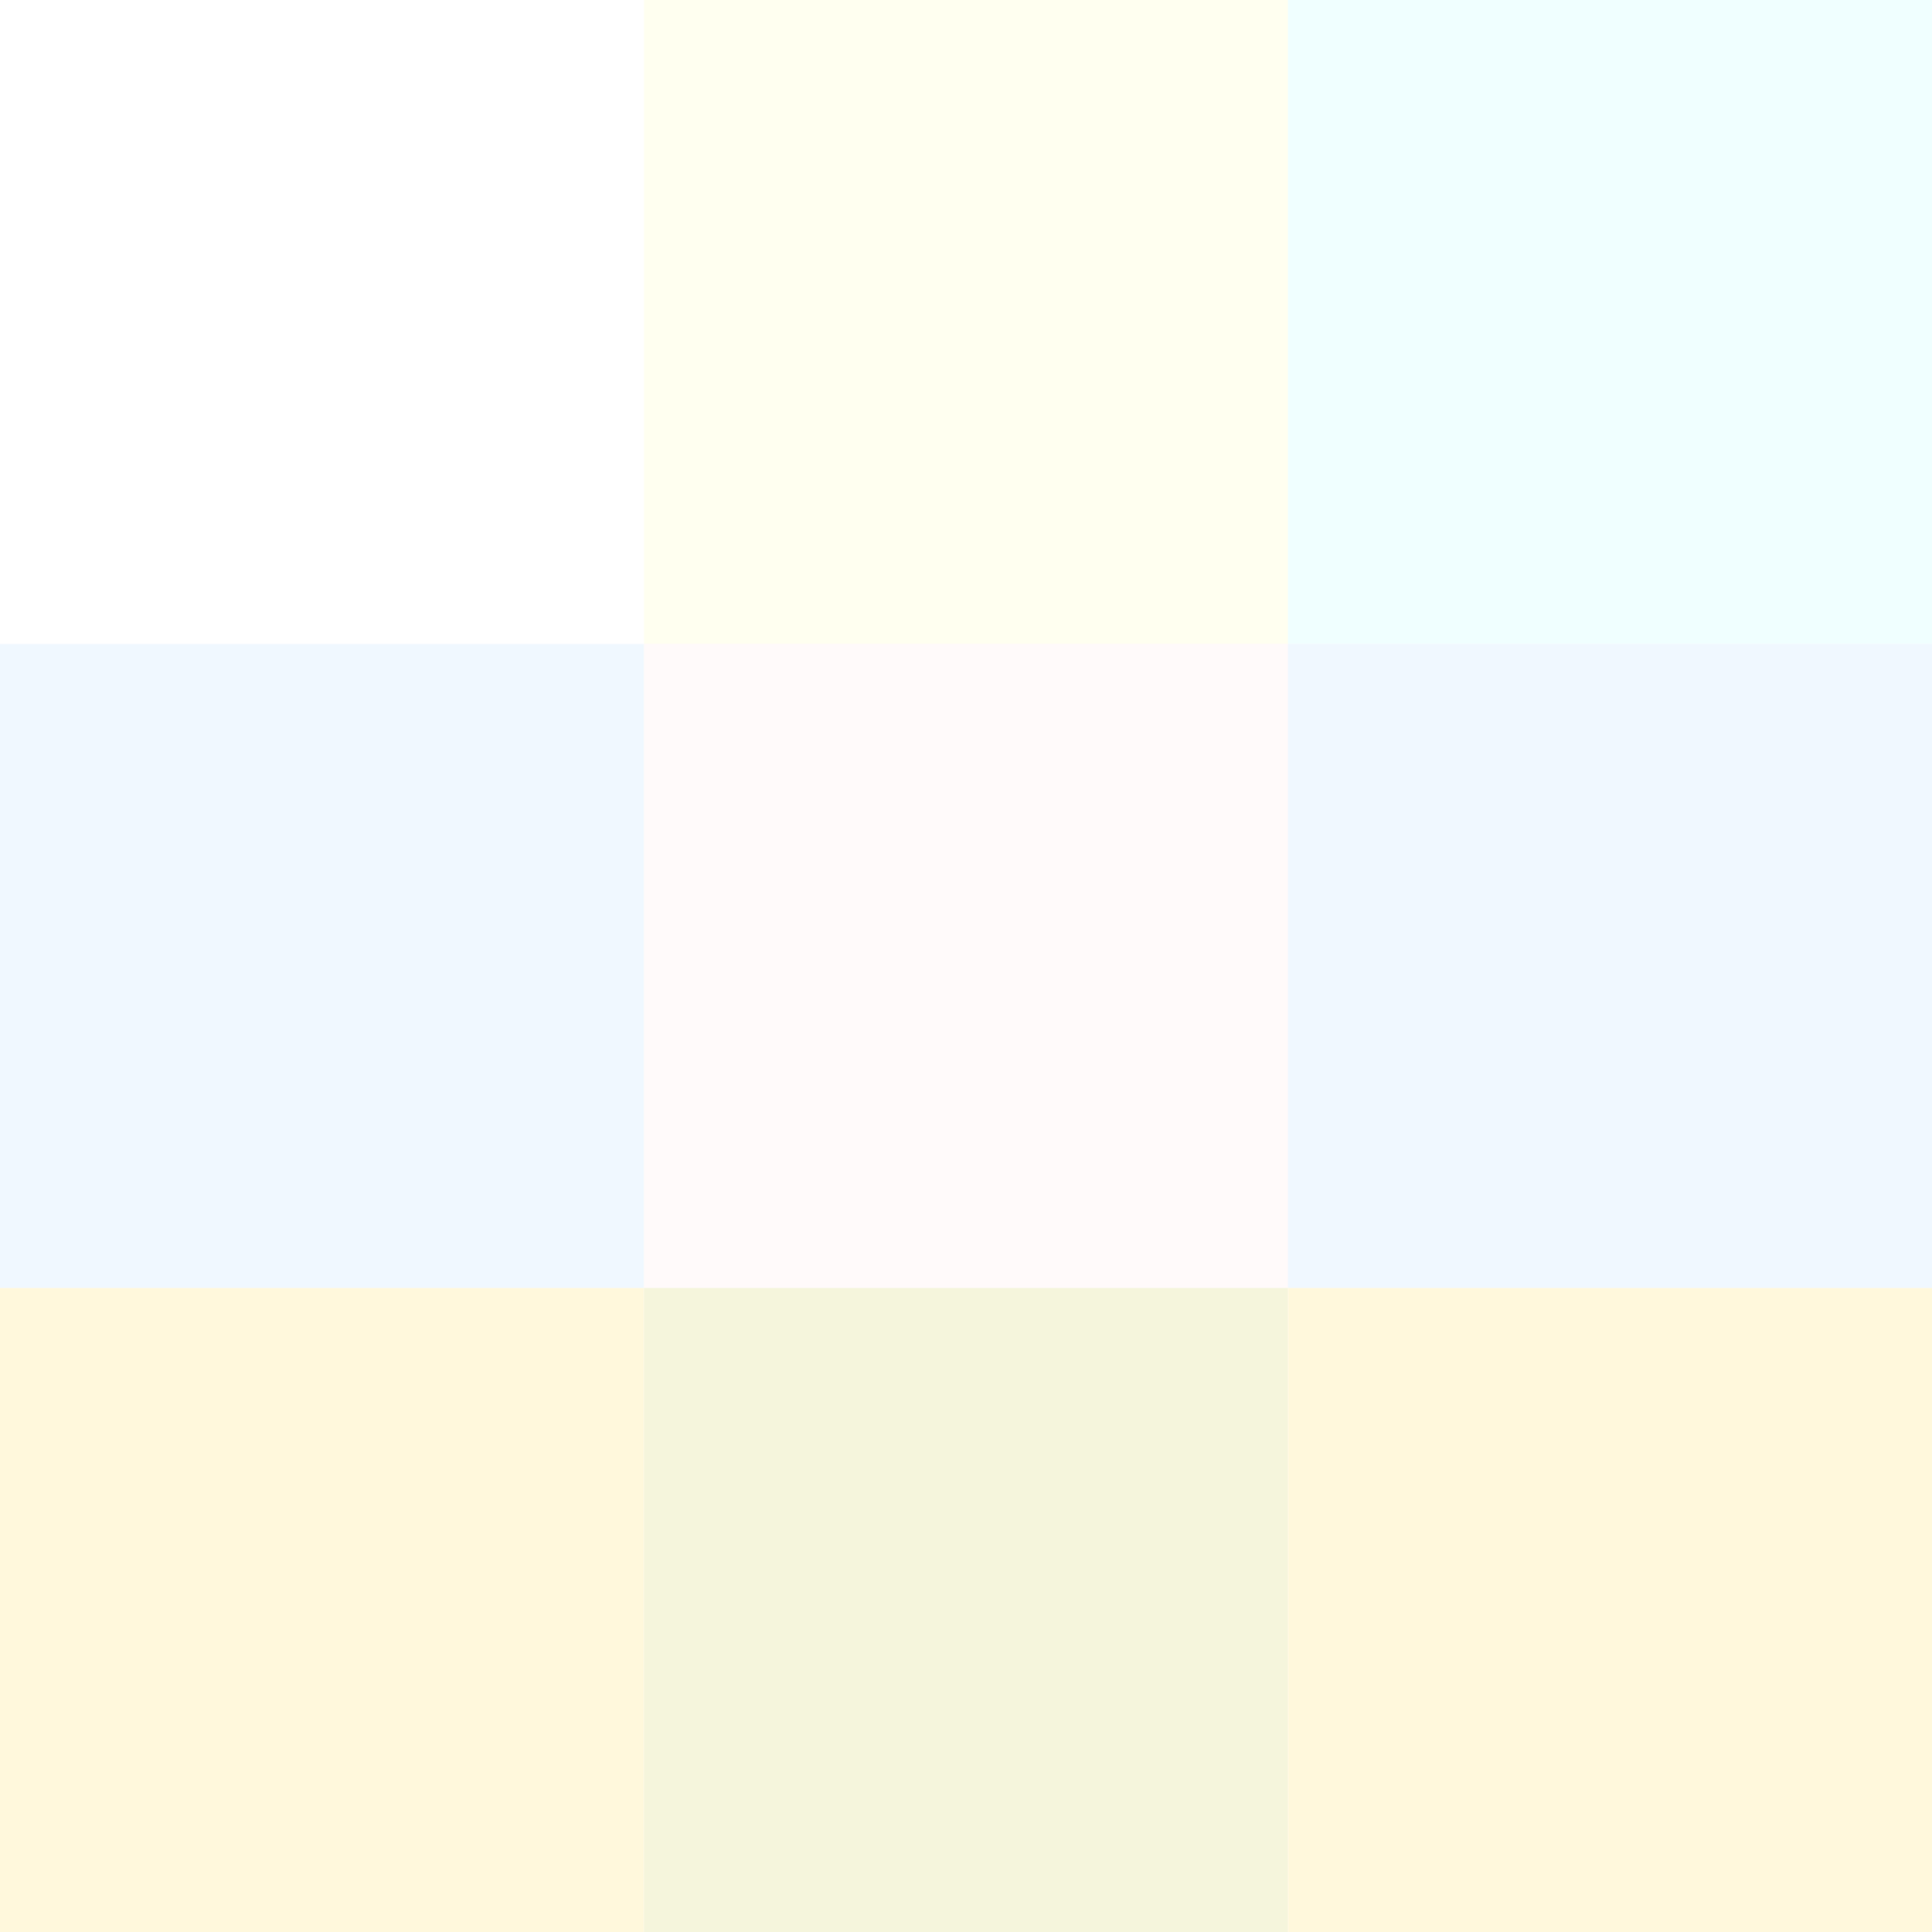 File:Color icon white.svg - Wikimedia Commons